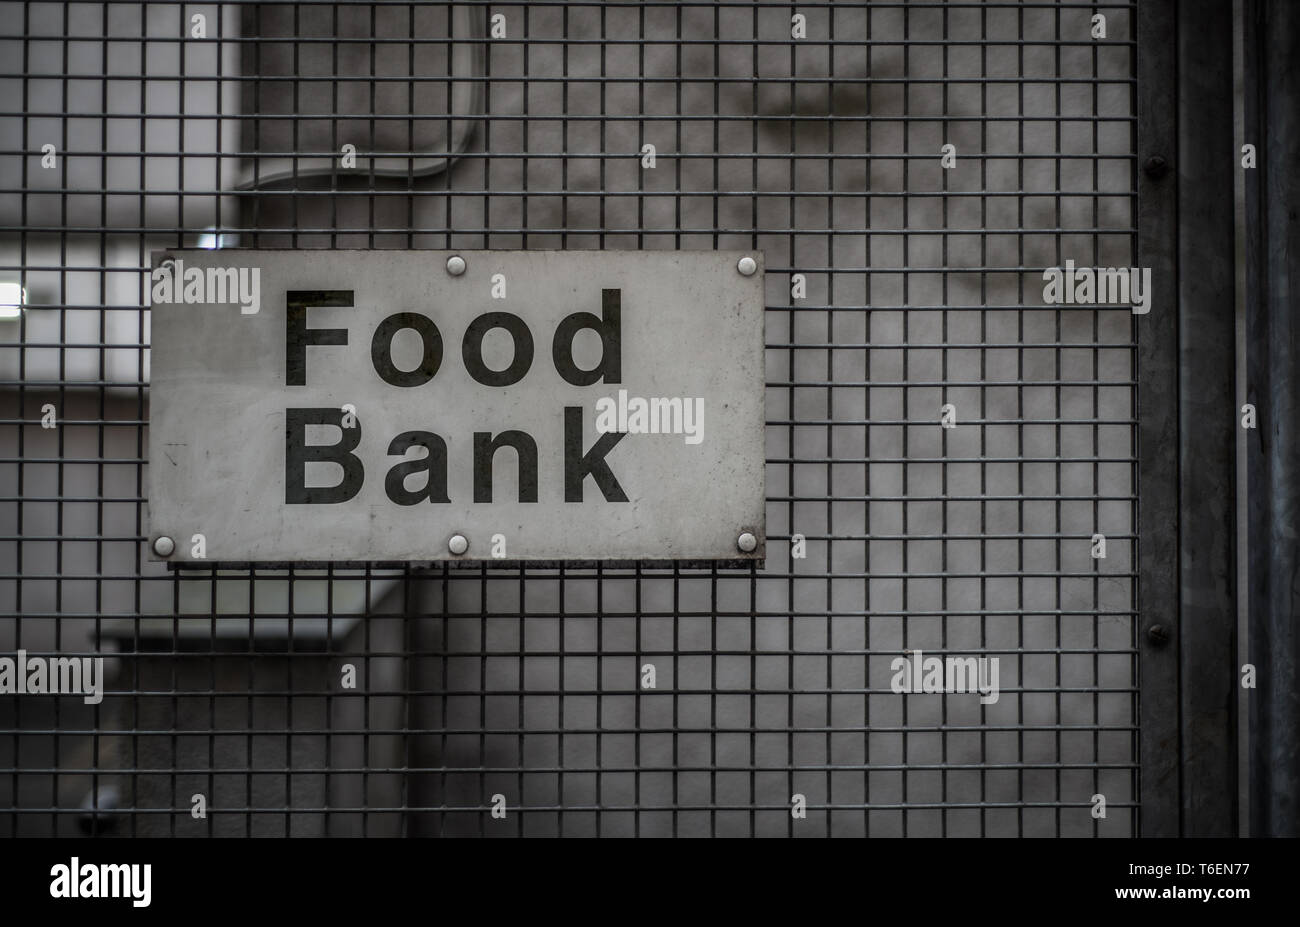 Charity Food Bank Stock Photos Charity Food Bank Stock